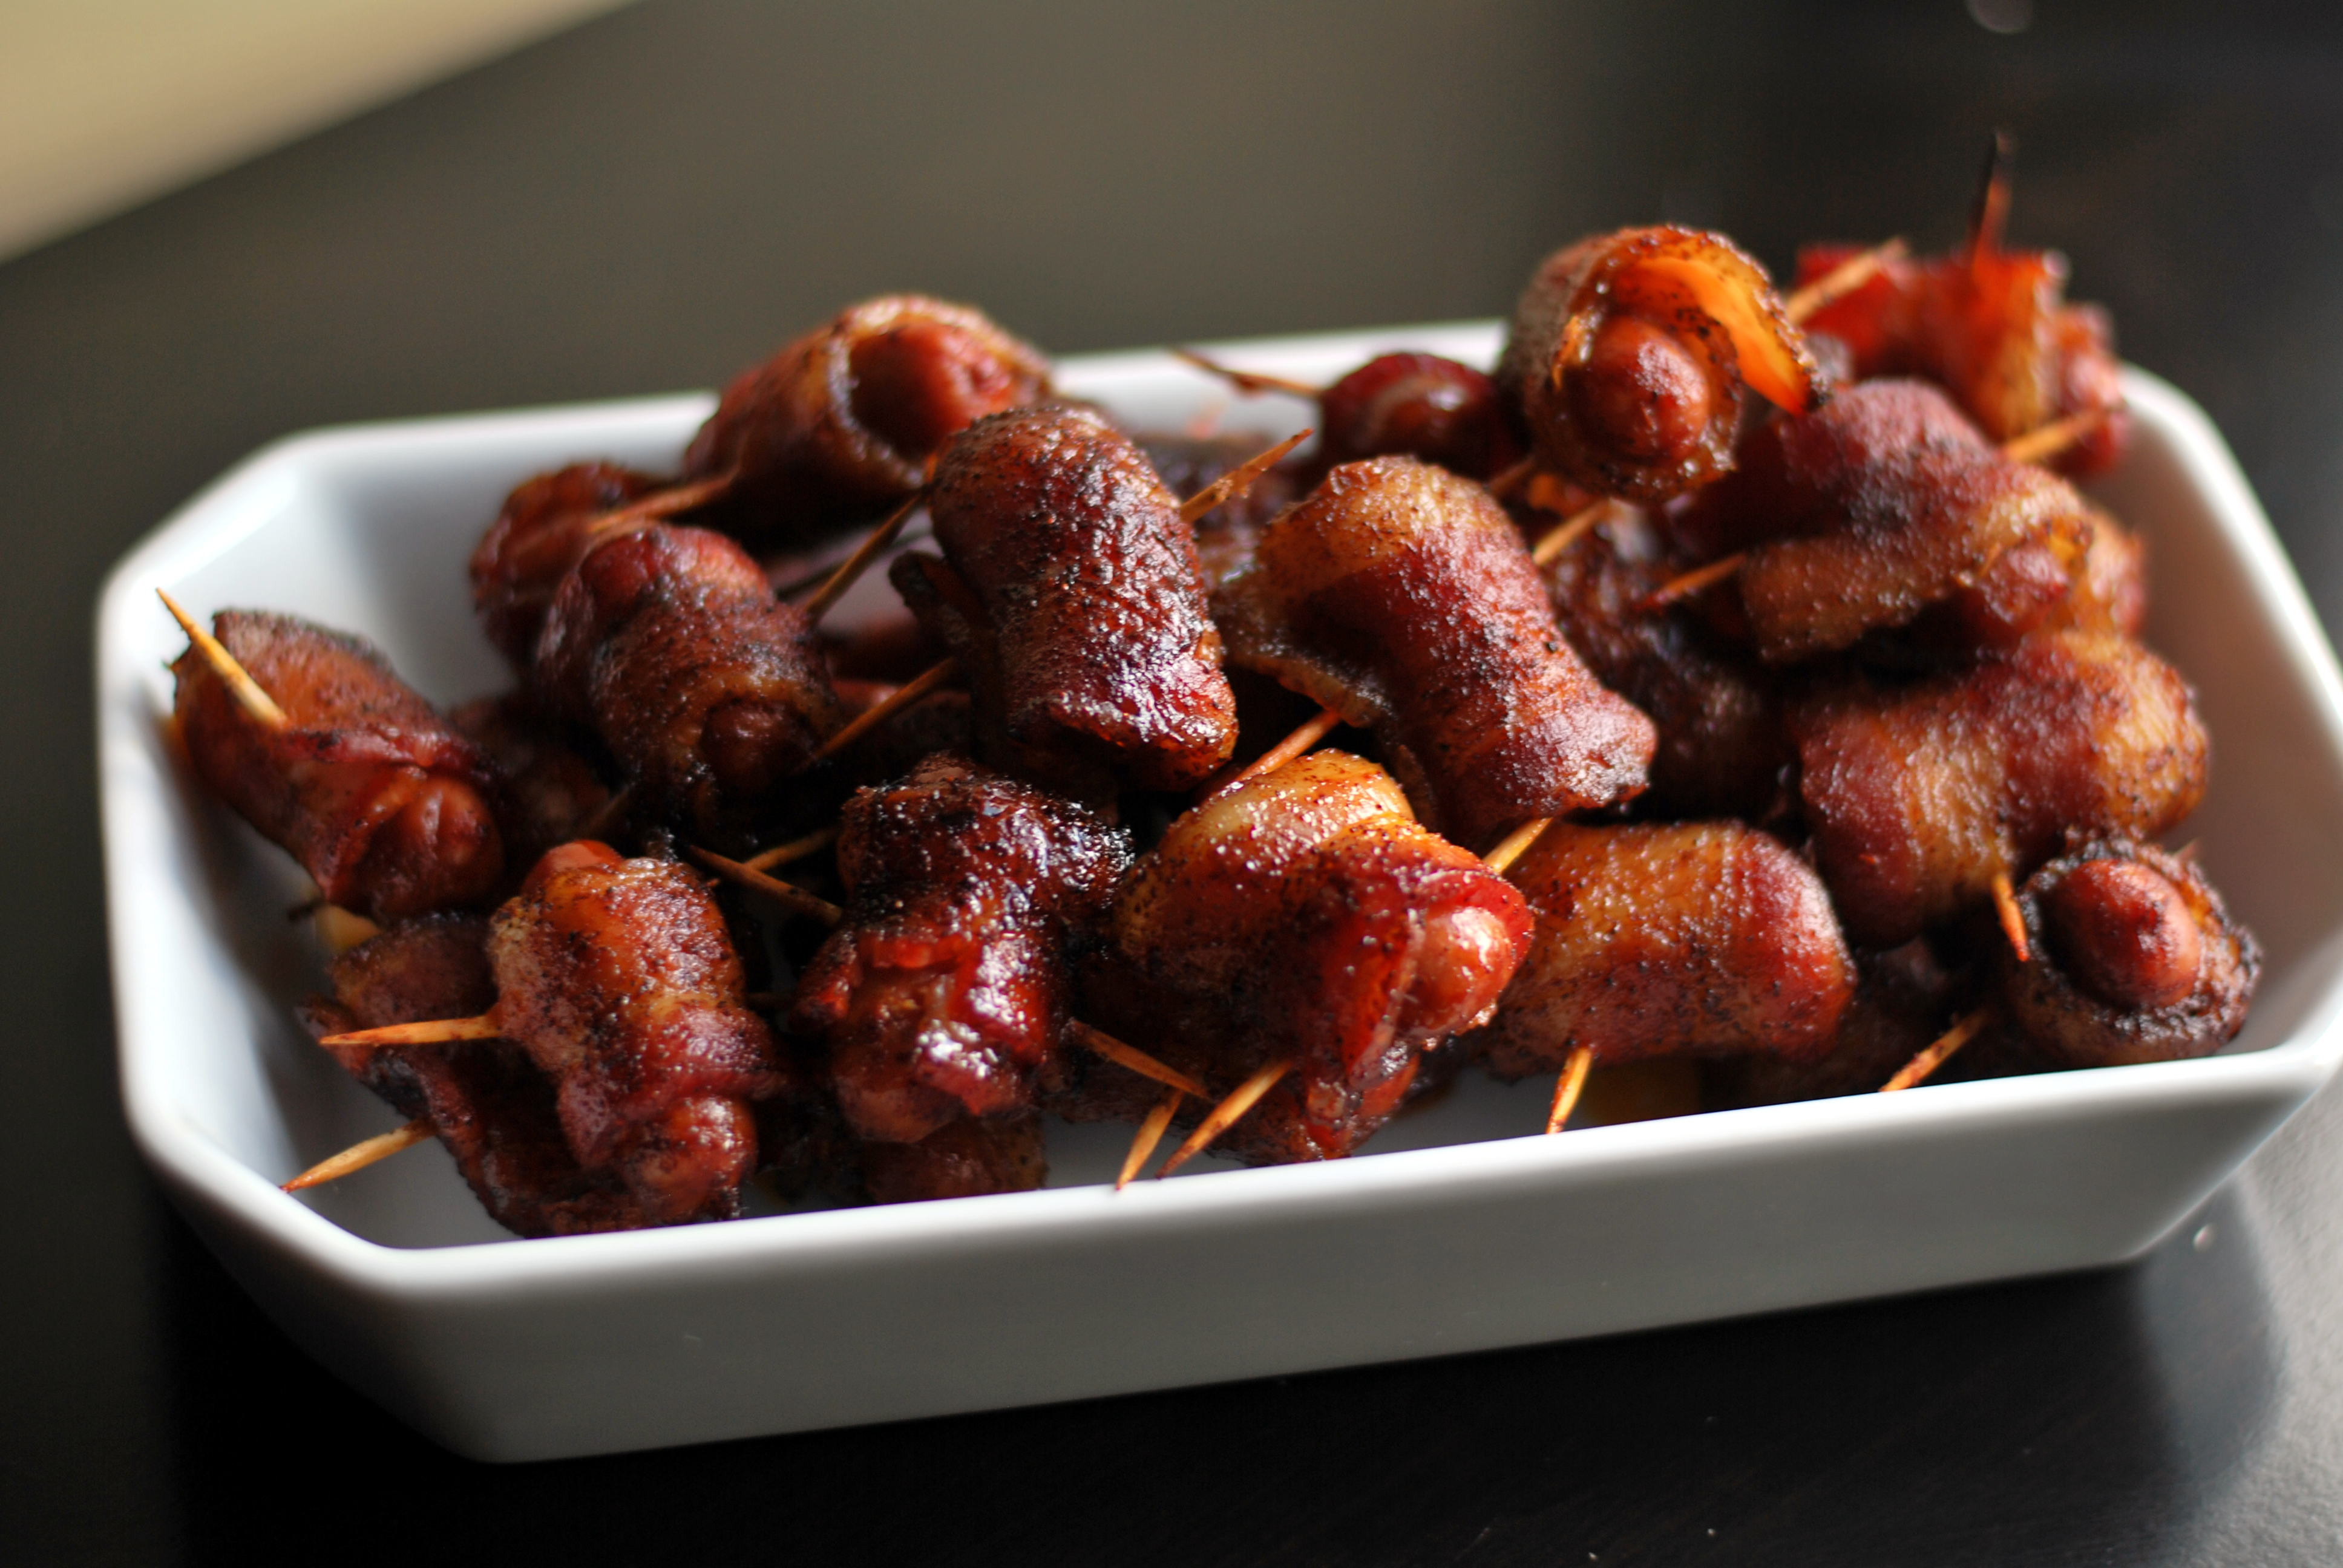 Easy Christmas Appetizers For A Crowd  12 Easy Holiday Appetizers For a Crowd